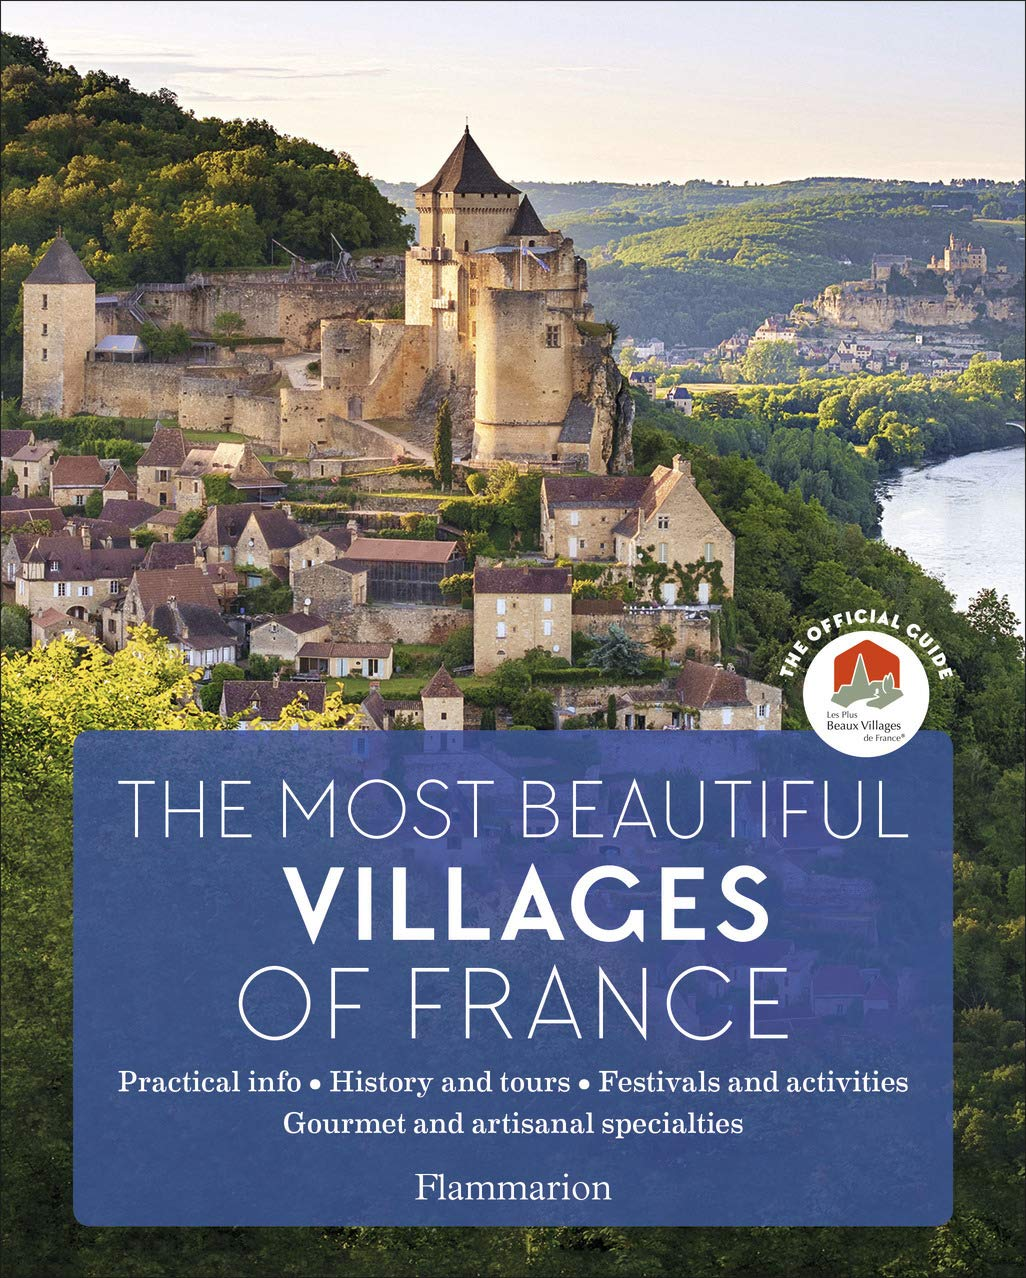 The Most Beautiful Villages of France: The Official Guide (2019 Edition) by Flammarion